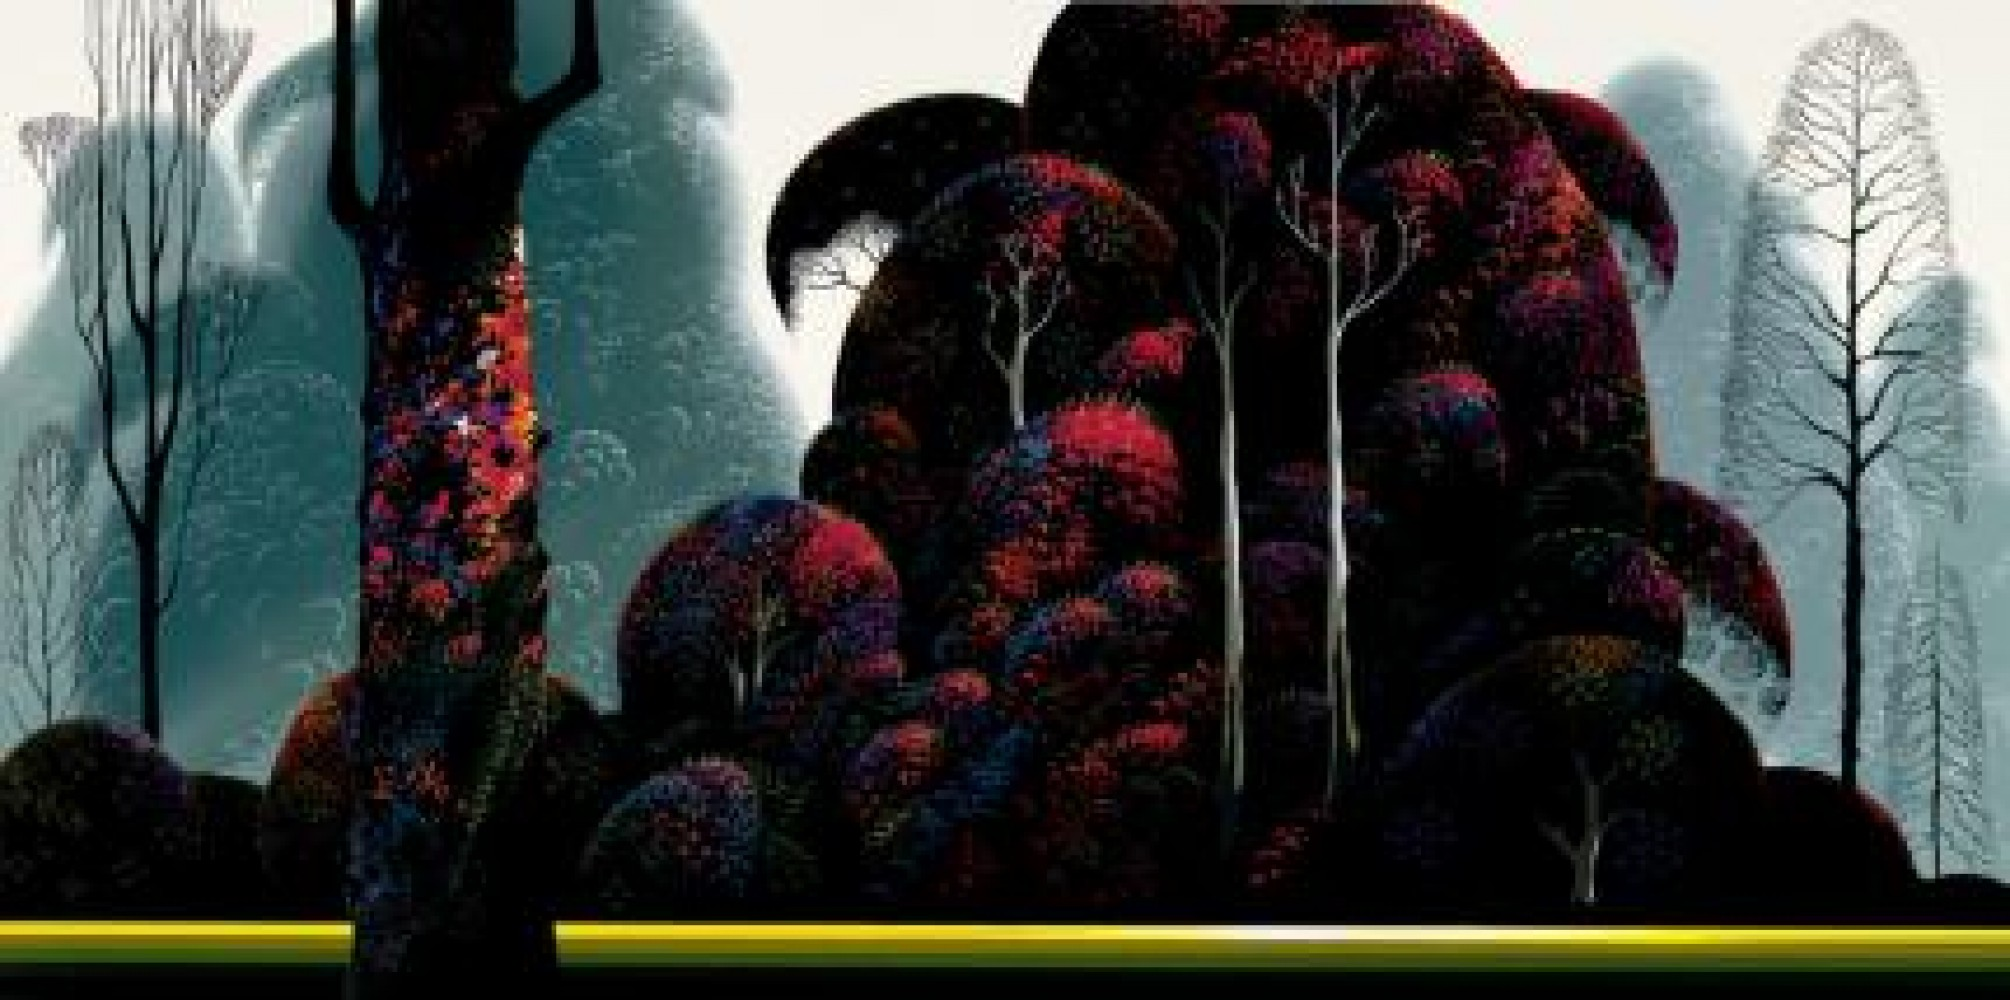 Crimson Eucalyptus 2009 by Eyvind Earle